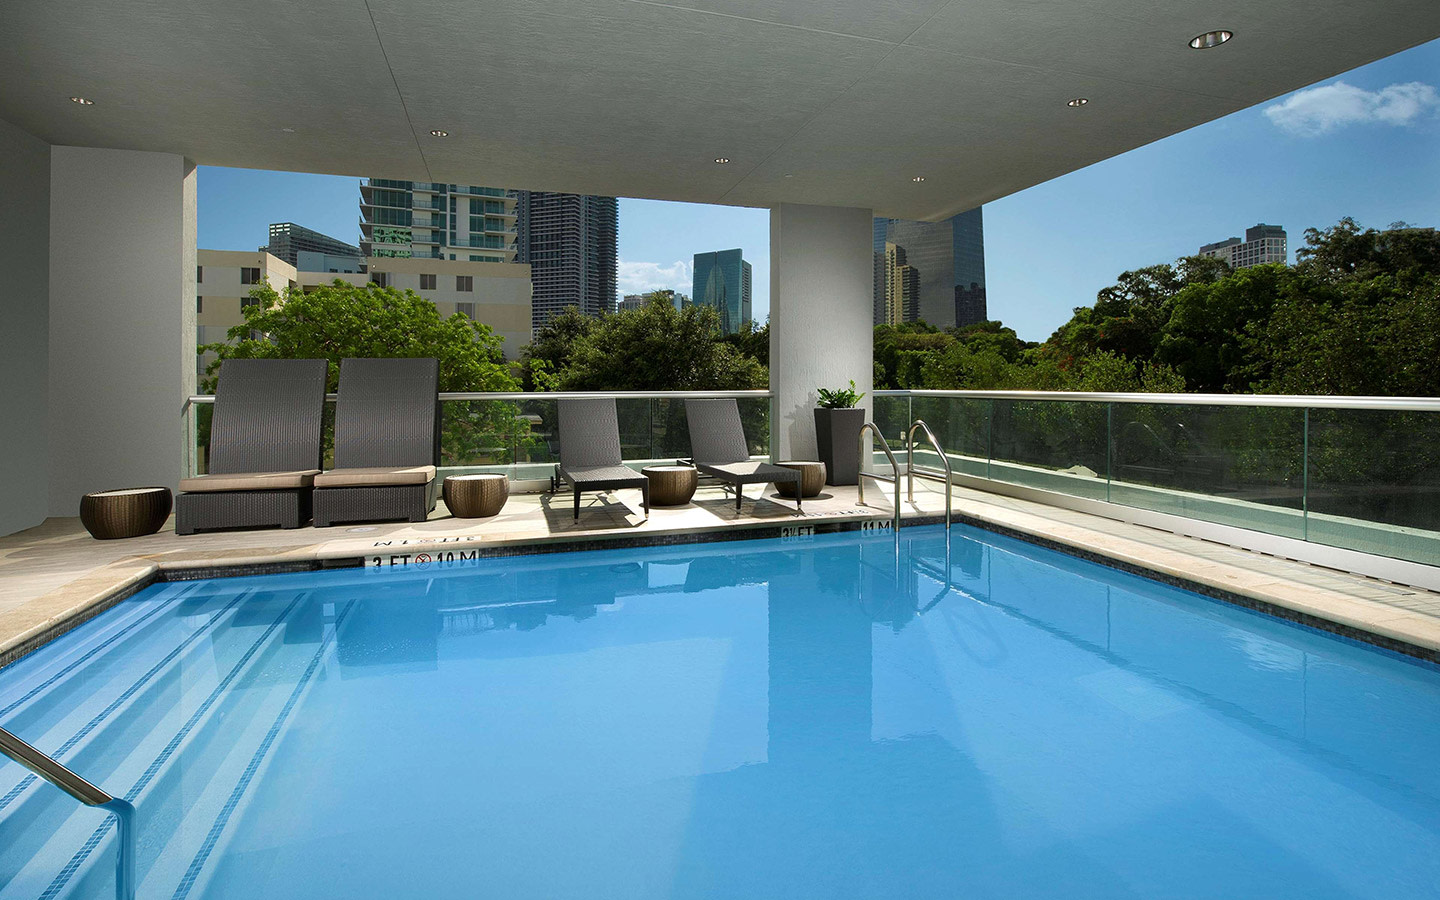 Beautiful Poolside Views at the Homewood Suites Miami